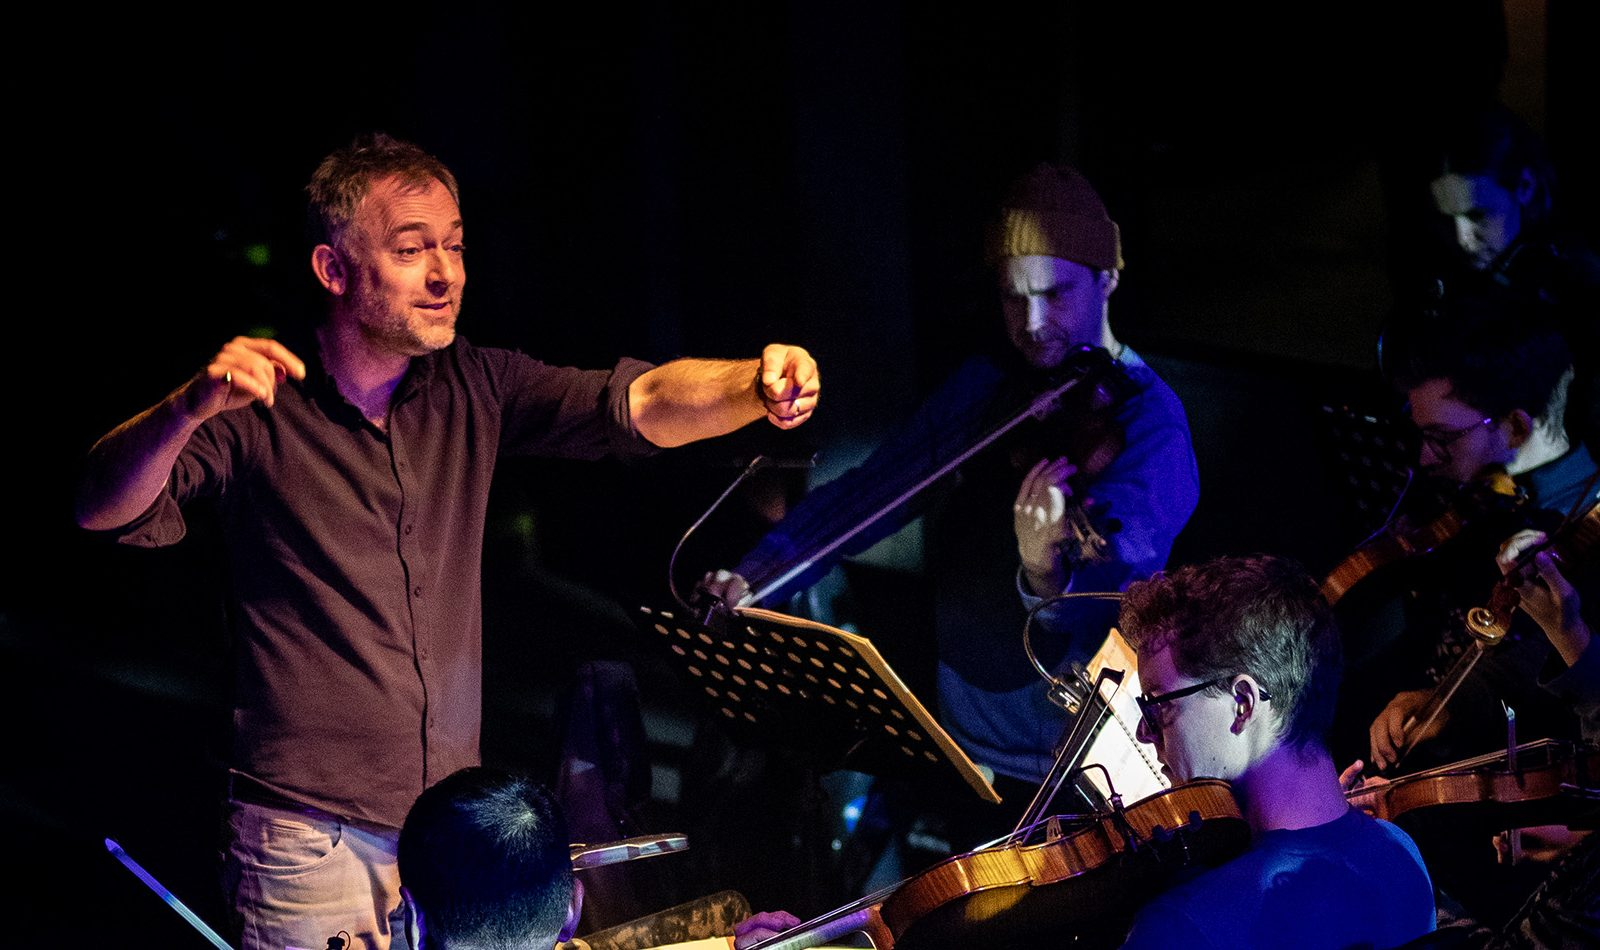 A man in a casual shirt conducts, smiling. String players in the foreground.